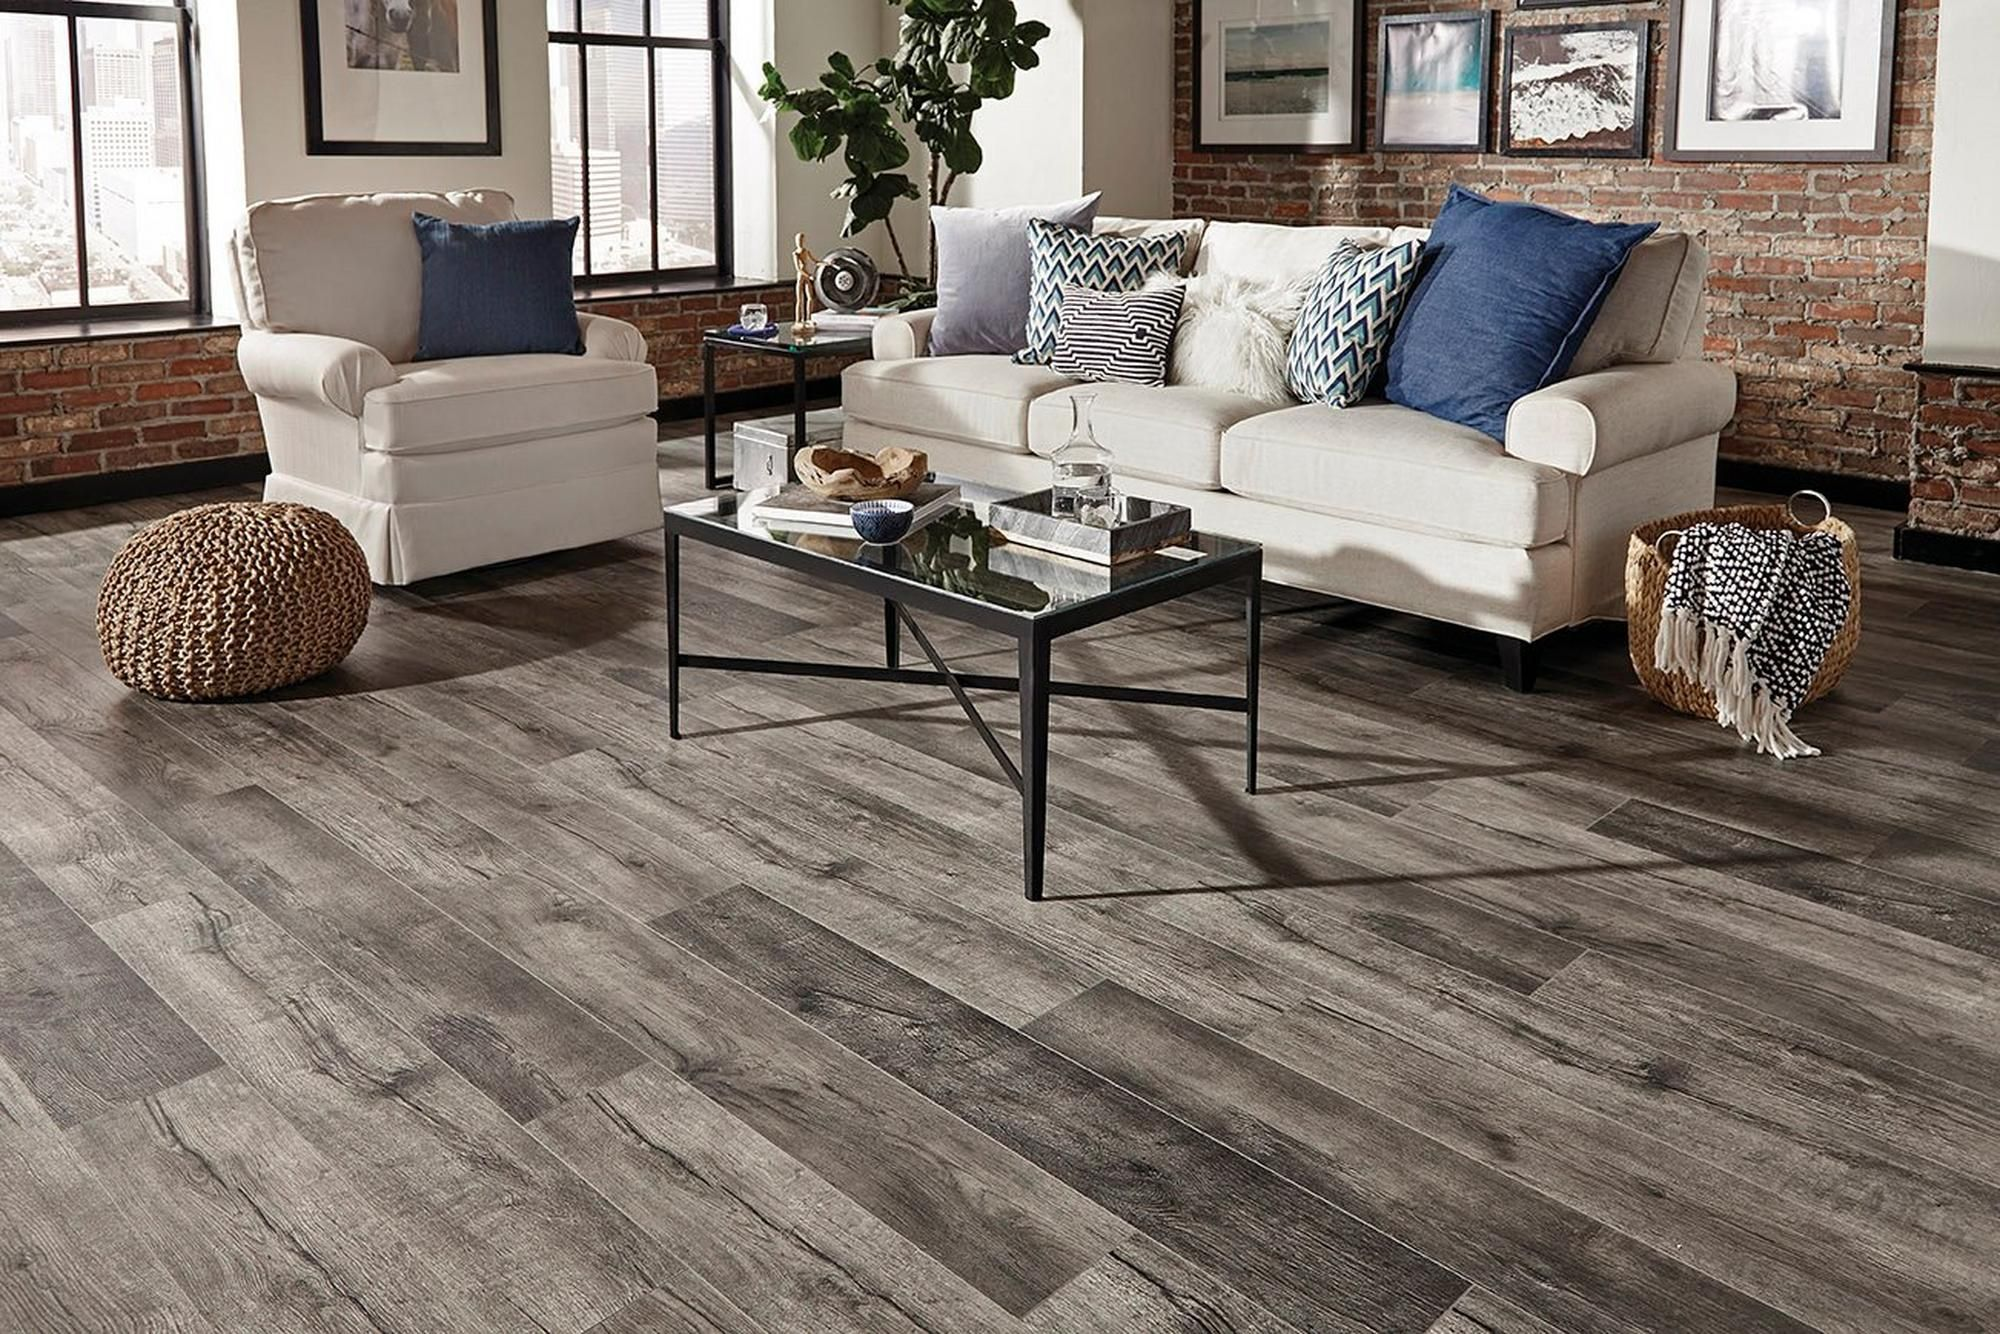 Stone Canyon Oak Water Resistant Laminate Floor Decor Luxury Vinyl Plank Home